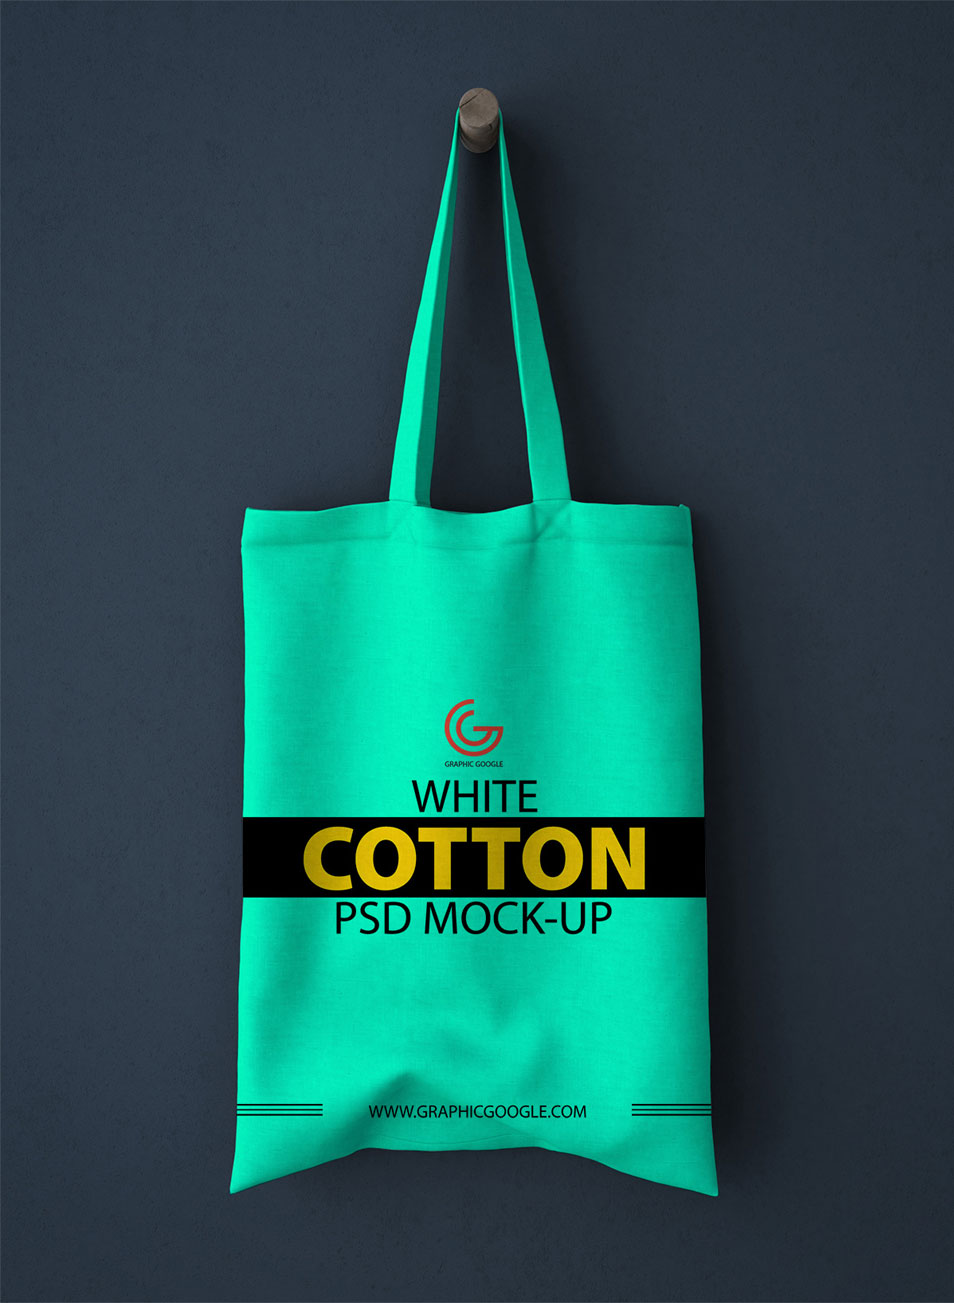 Free White Cotton Bag PSD Mock-up For Graphic Designers